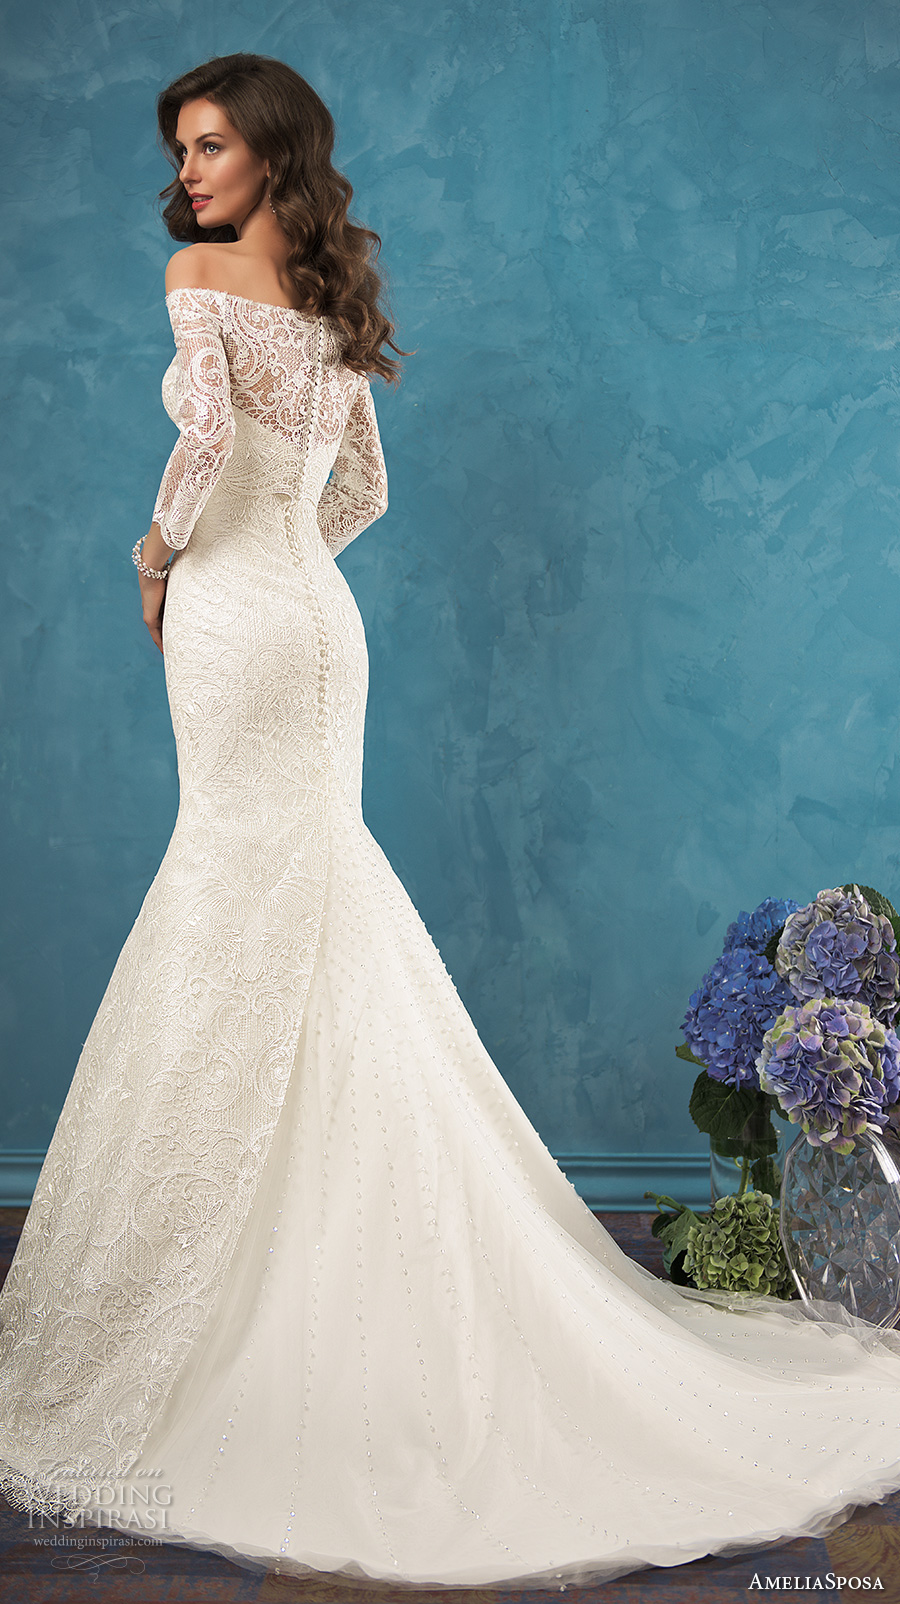 40 breathtaking illusion wedding dresses illusion wedding dress illusion low back details stella york wedding dresses style